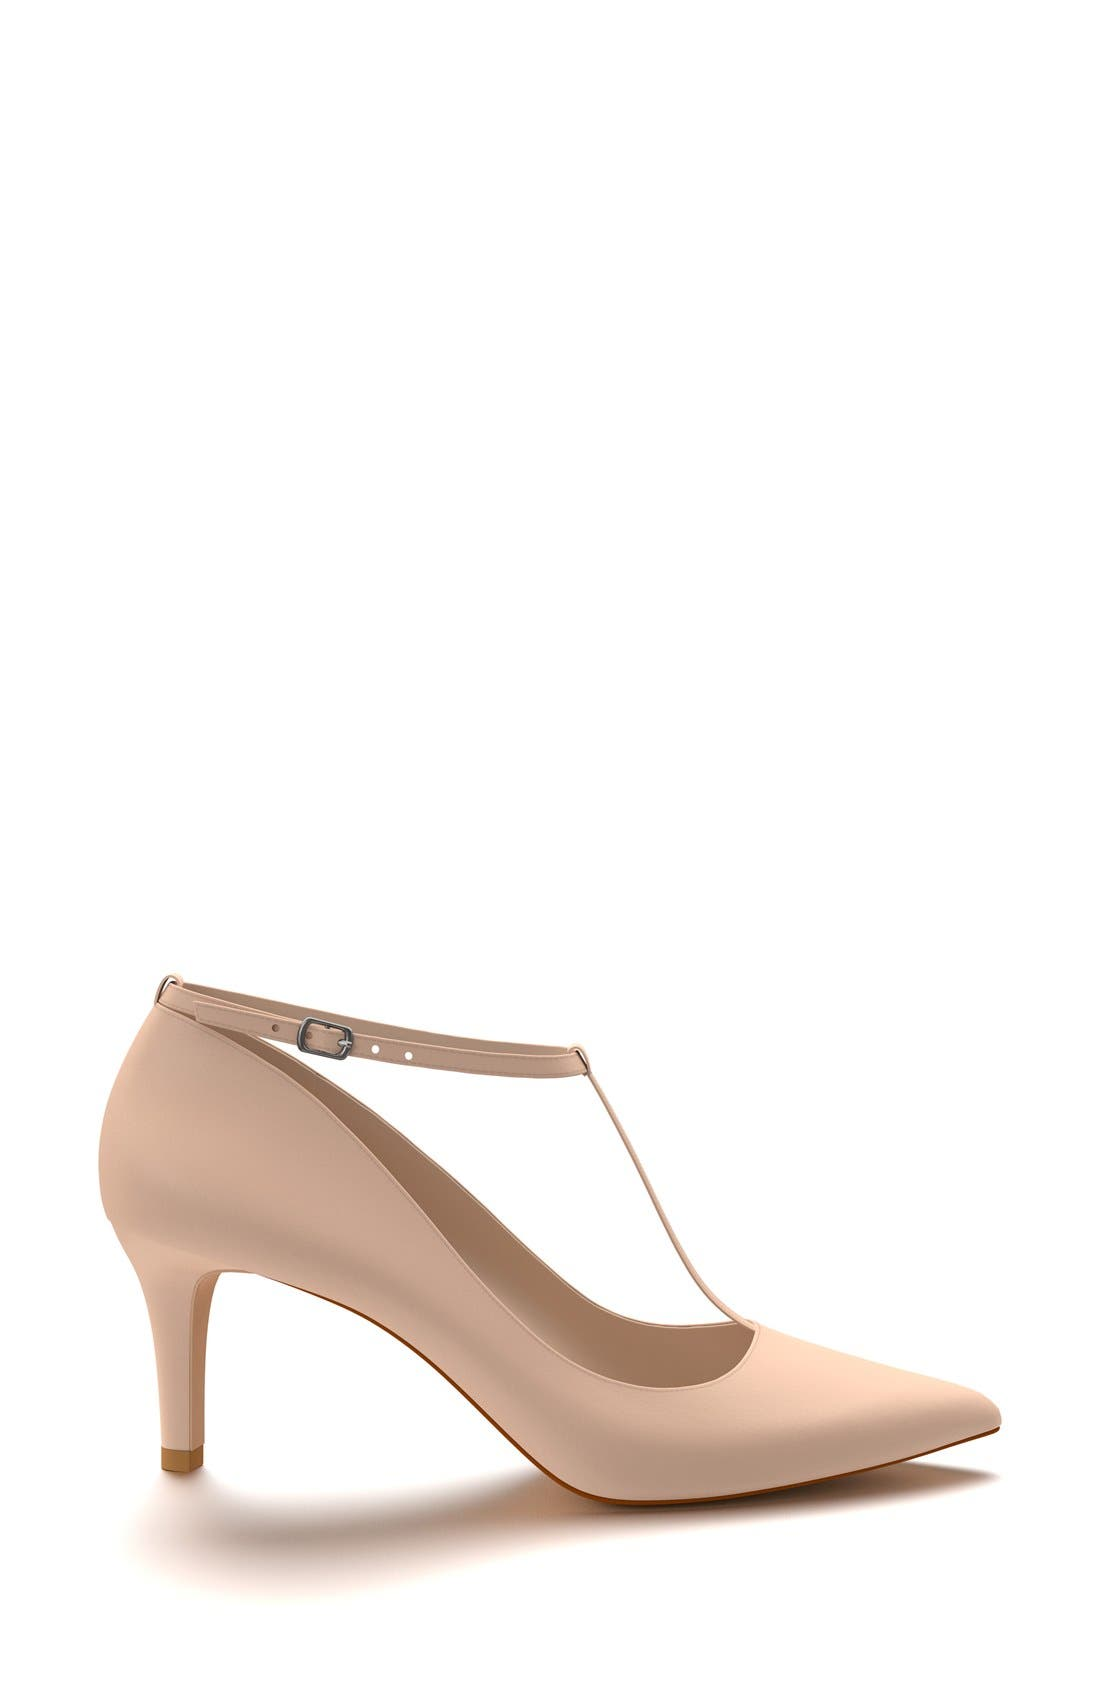 T-Strap Pump,                             Alternate thumbnail 4, color,                             Blush Leather